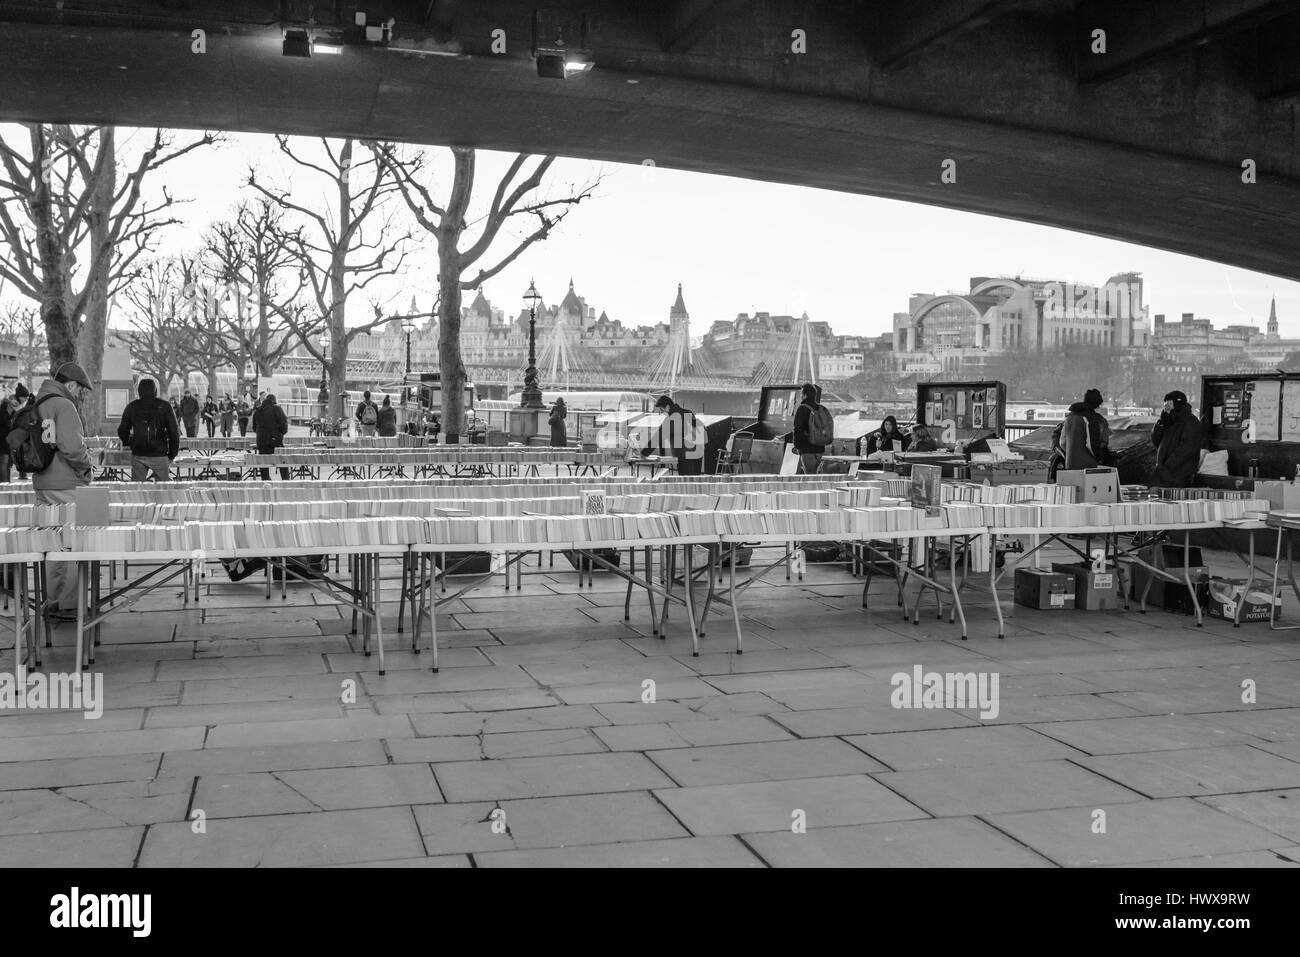 People looking at second hand books on stalls for sale underneath Waterloo Bridge on the South Bank, London, UK. - Stock Image